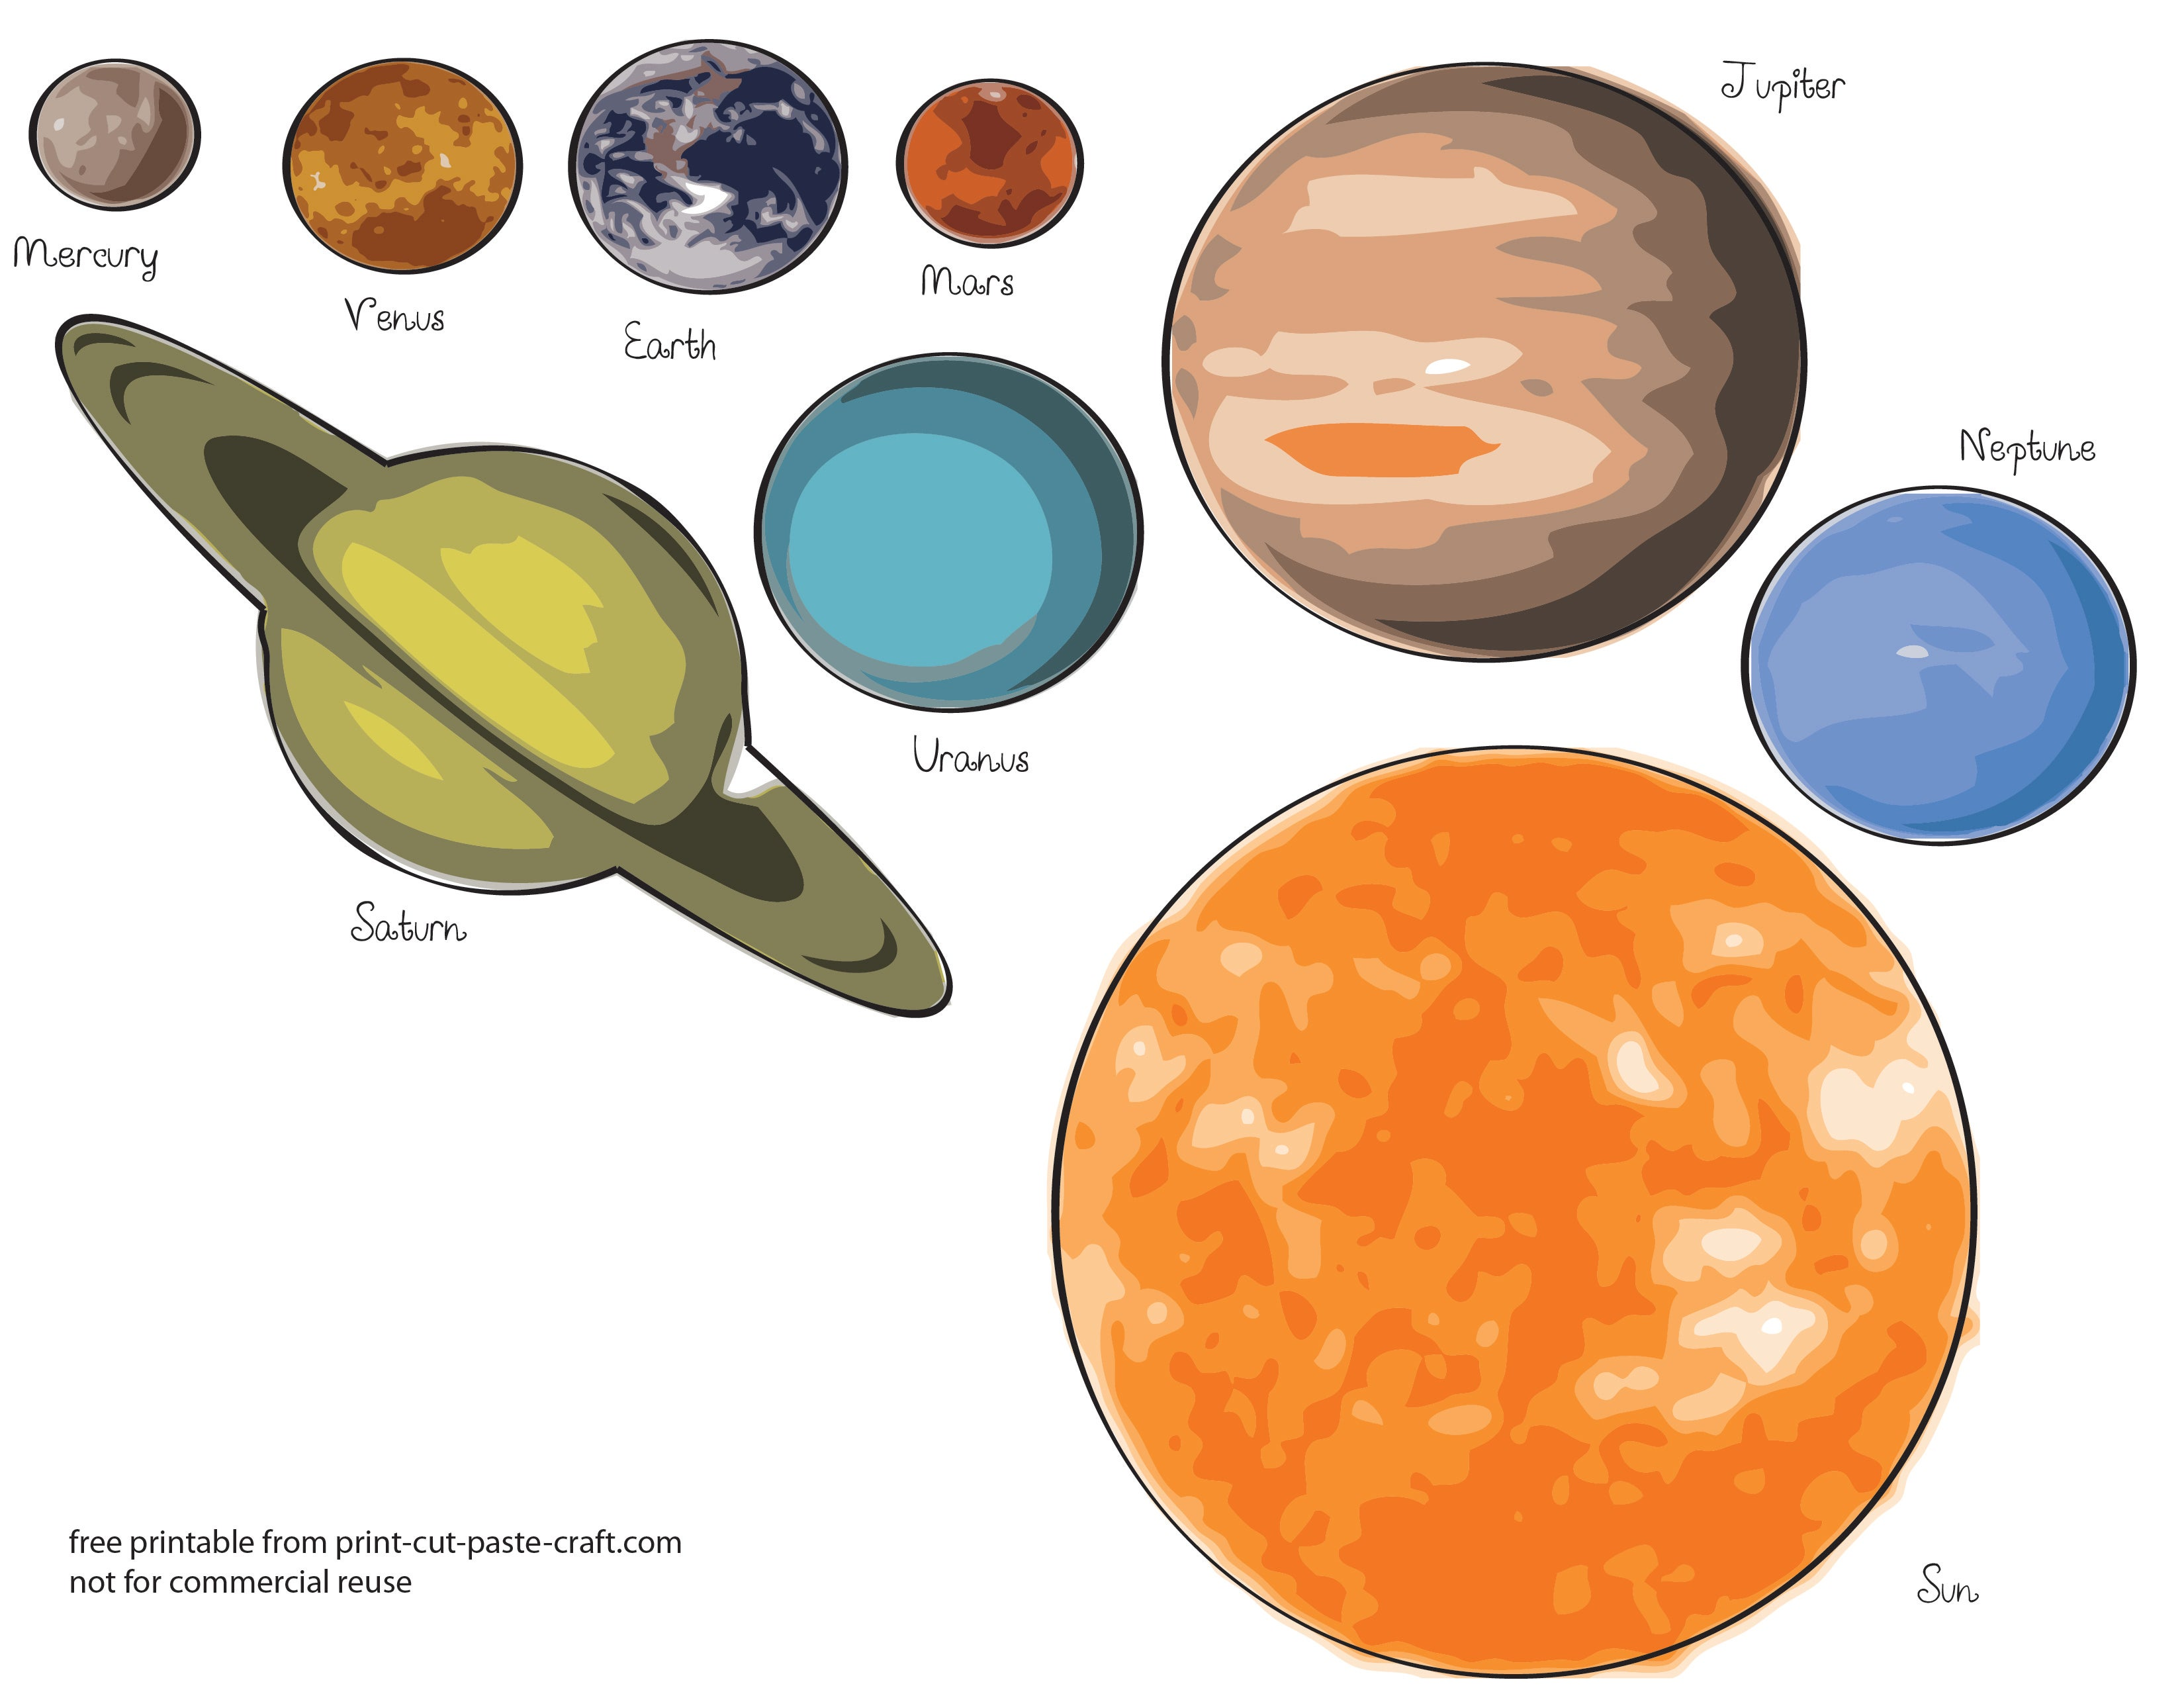 When you remove all the touchups and filters the planets of the Solar System look slightly different than you might imagine especially in terms of color